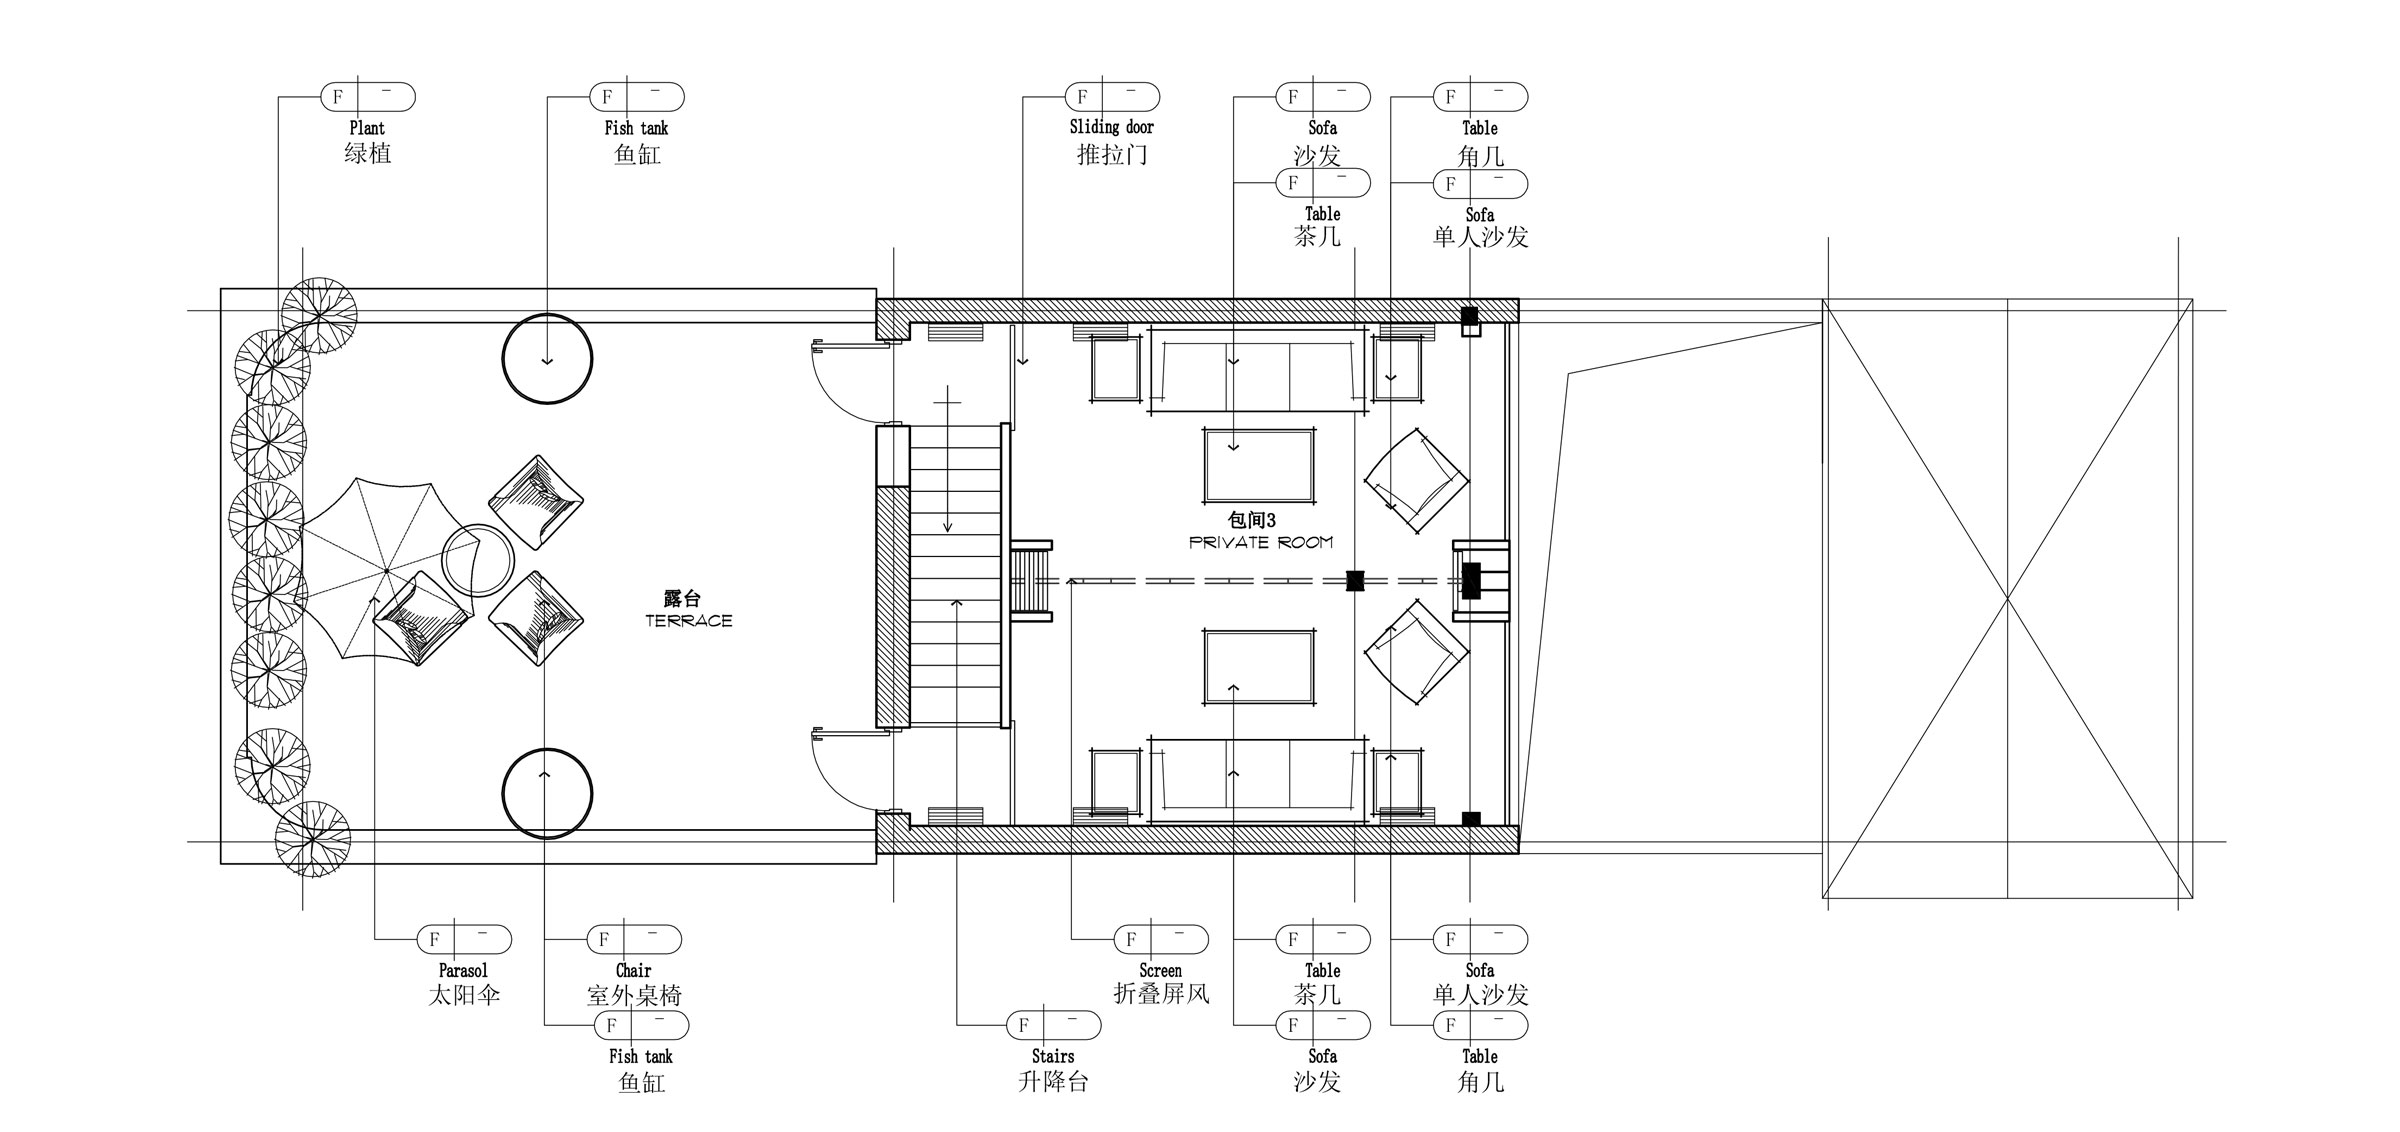 02-二层家具平面图-second-floor-furniture-plan.jpg